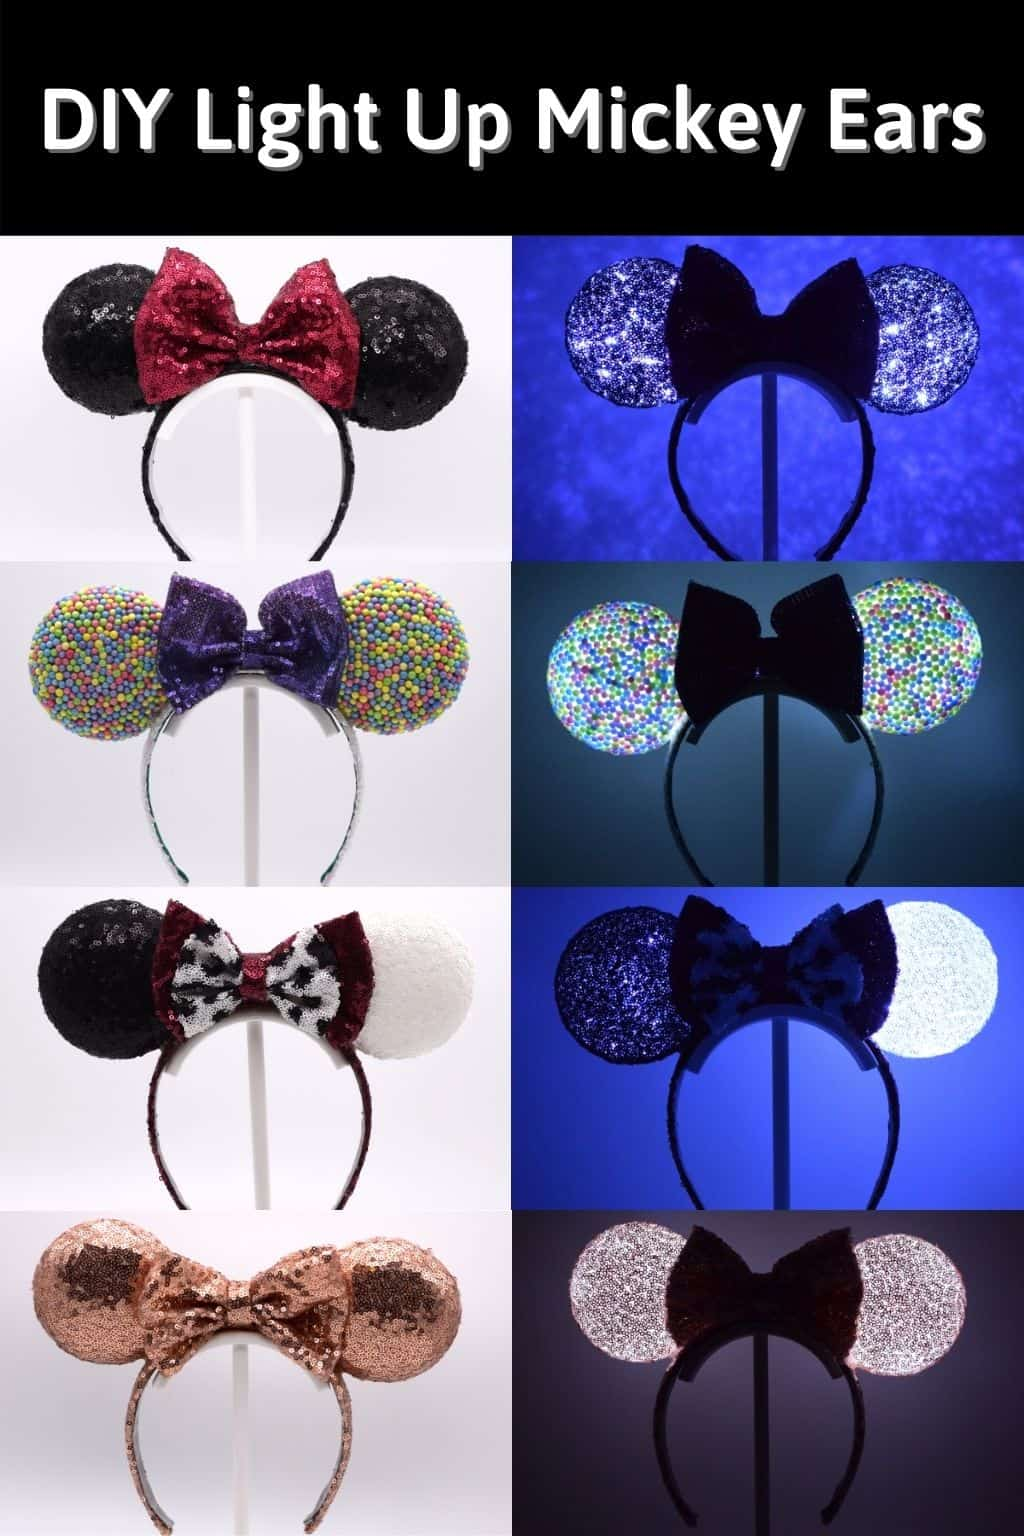 """DIY Mickey Mouse Ears, including the classic Minnie Ears Headband, Rainbow Mickey Ears, Cruella Deville 101 Dalmatians Disney Ears, and Rose Gold Minnie Ears. They all also have another image of them lit up at night, with the text """"DIY Light Up Mickey Ears"""""""